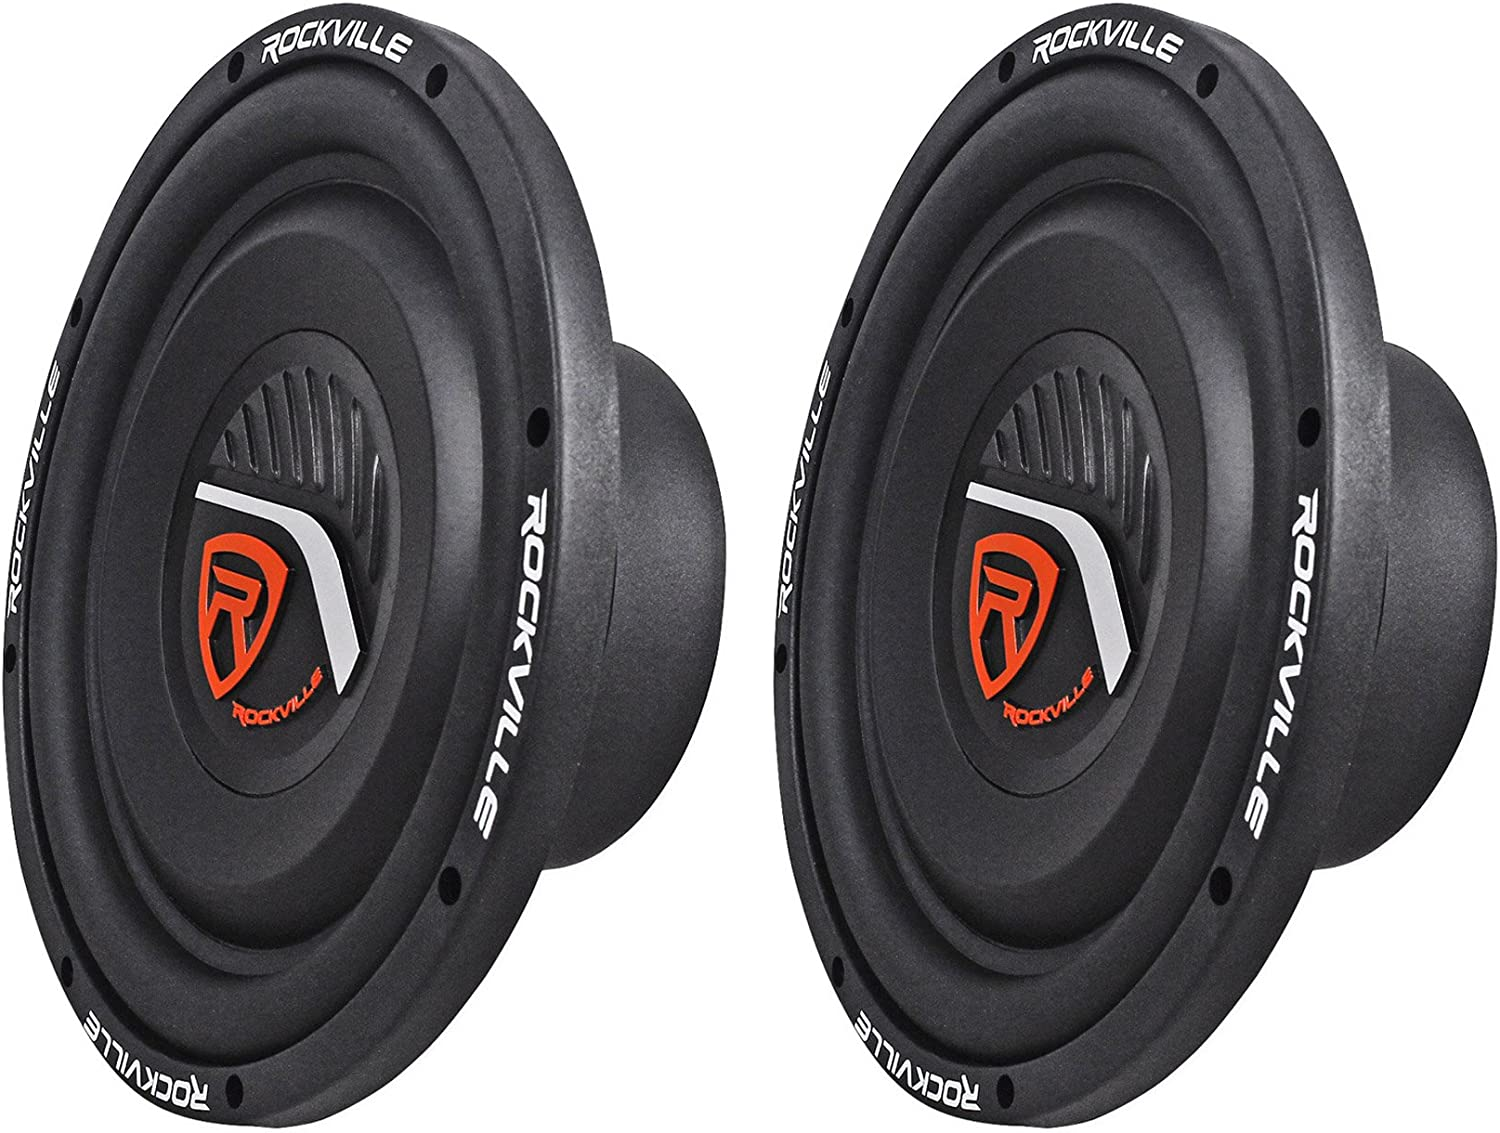 "(2) Rockville W10T4-S4 10"" Shallow Mount 2400 Watt 4-Ohm Car Audio Subwoofers"